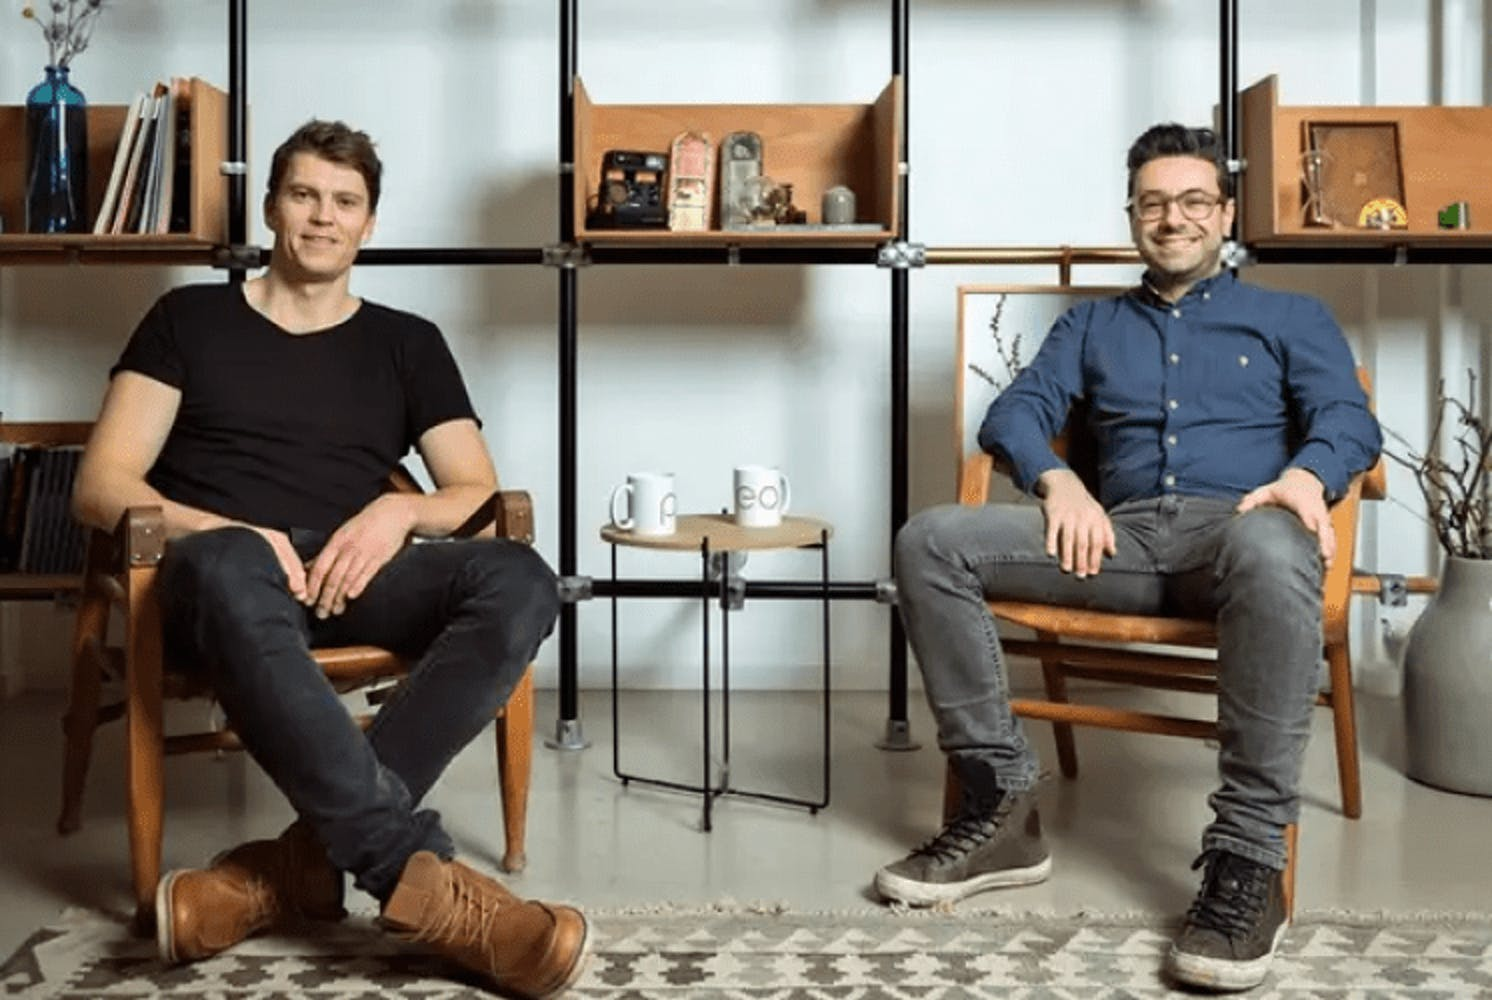 Pleo's two co-founders